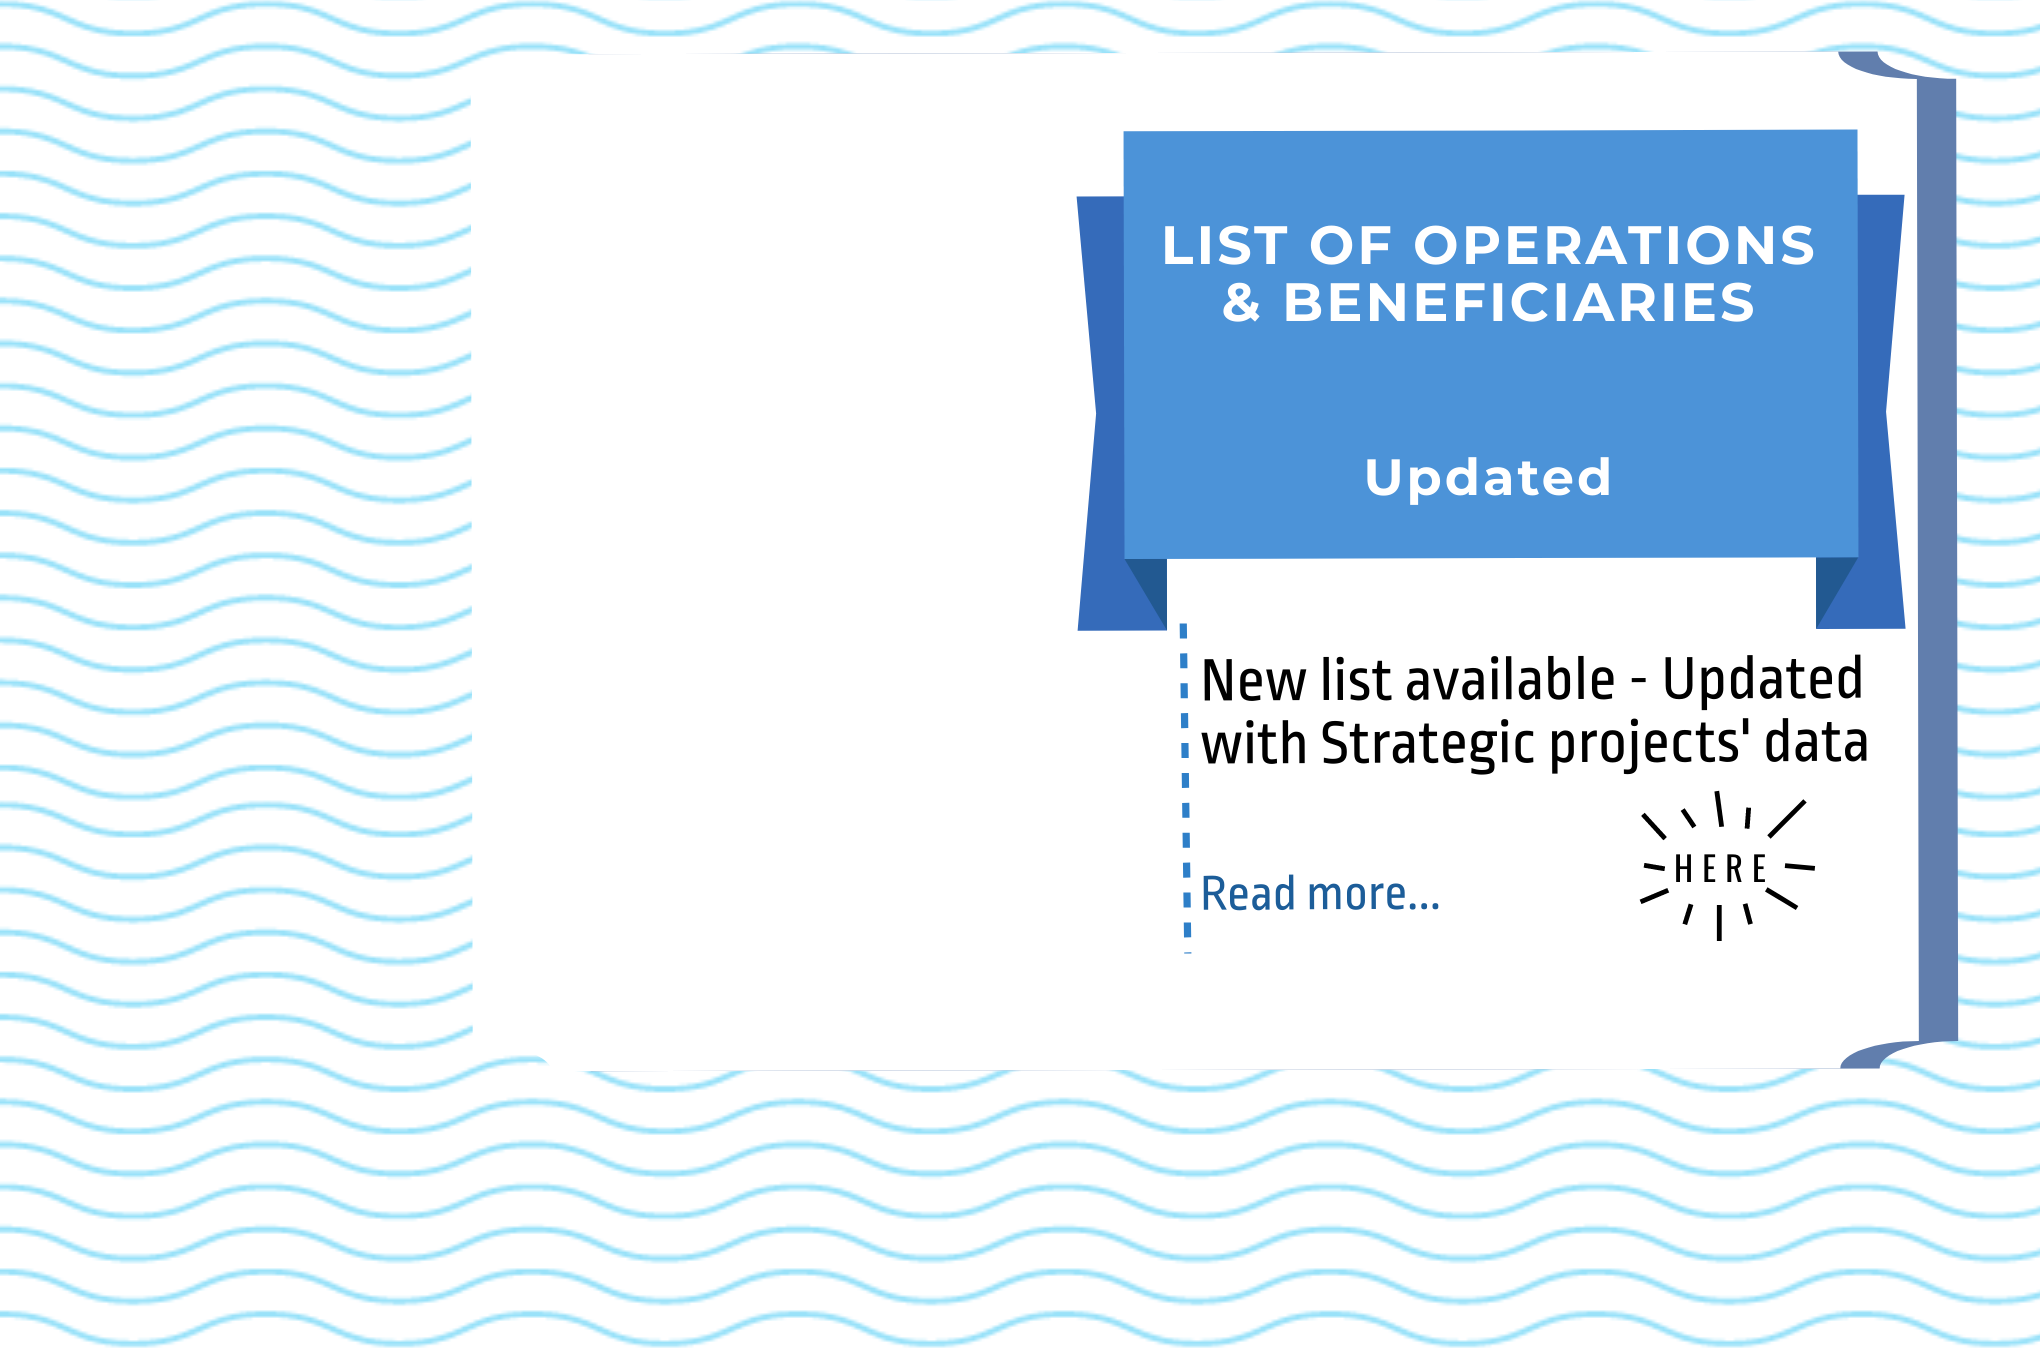 List of Operations & Beneficiaries: latest update